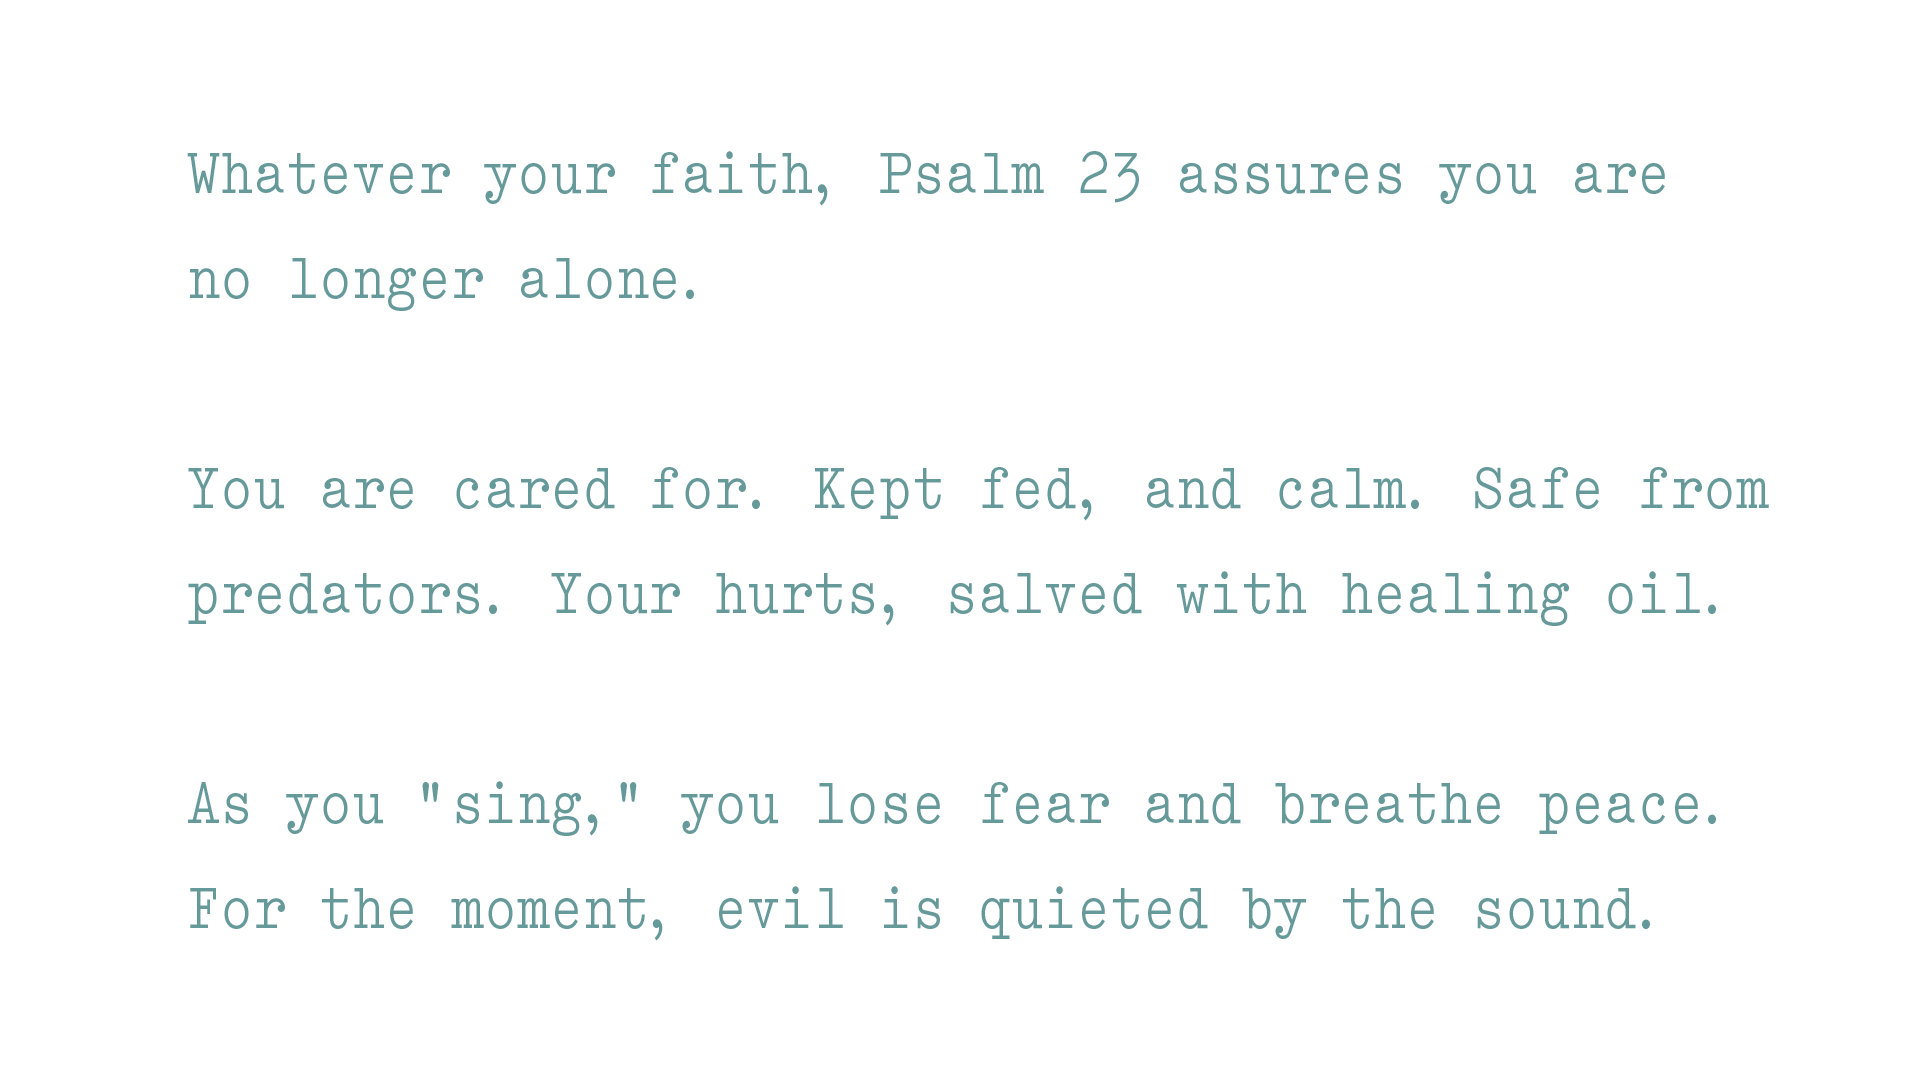 EP-23-whatever your faith-blue.png